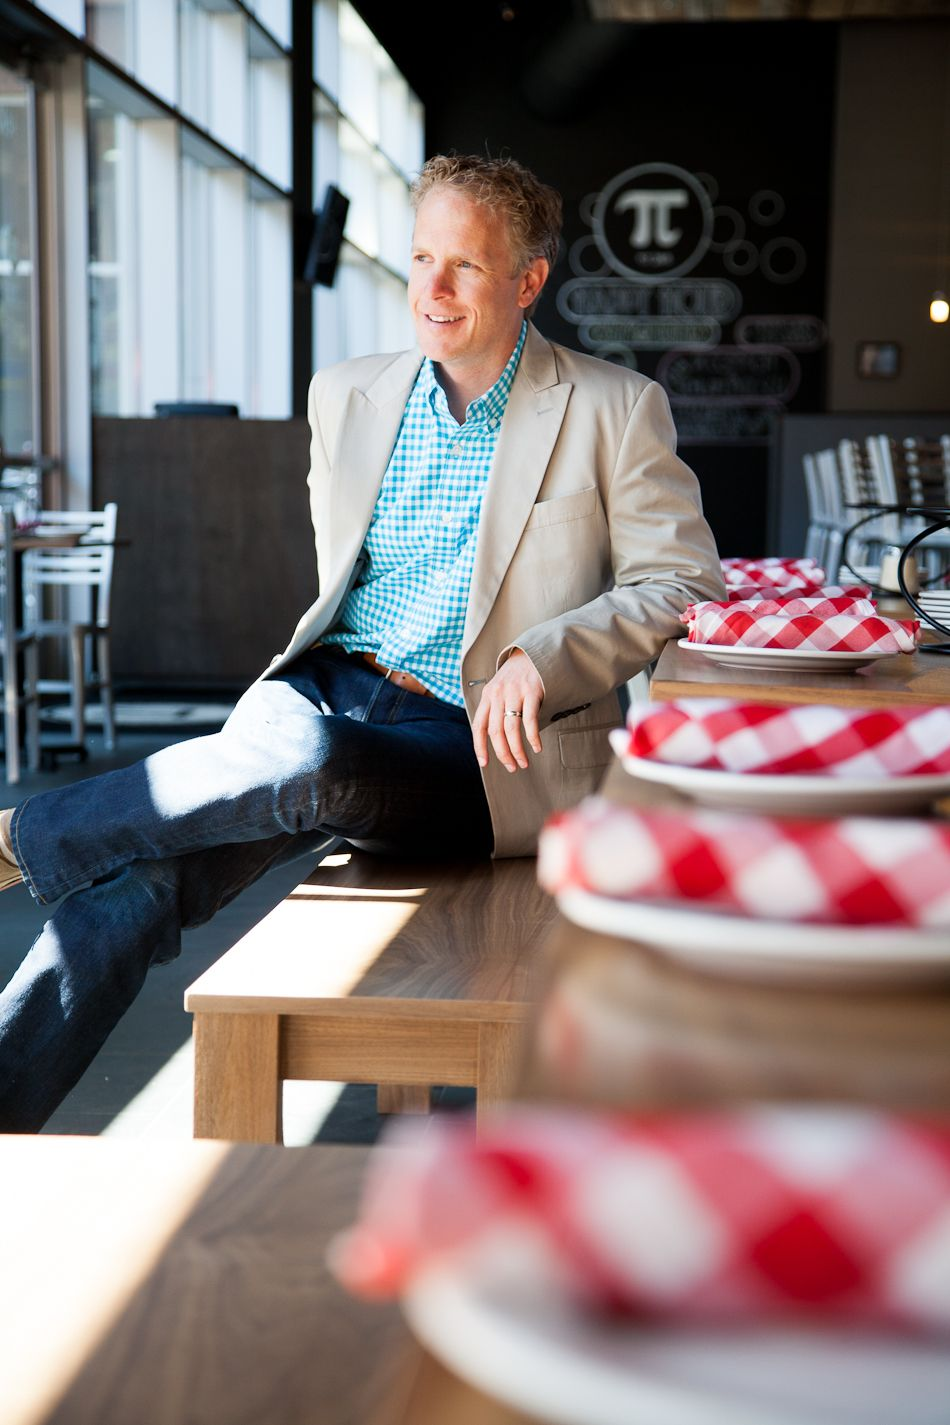 Chris Sommers, co-owner of Pi chain of pizza restaurants in St. Louis. Photograph by Jonathan Gayman for Feast magazine.